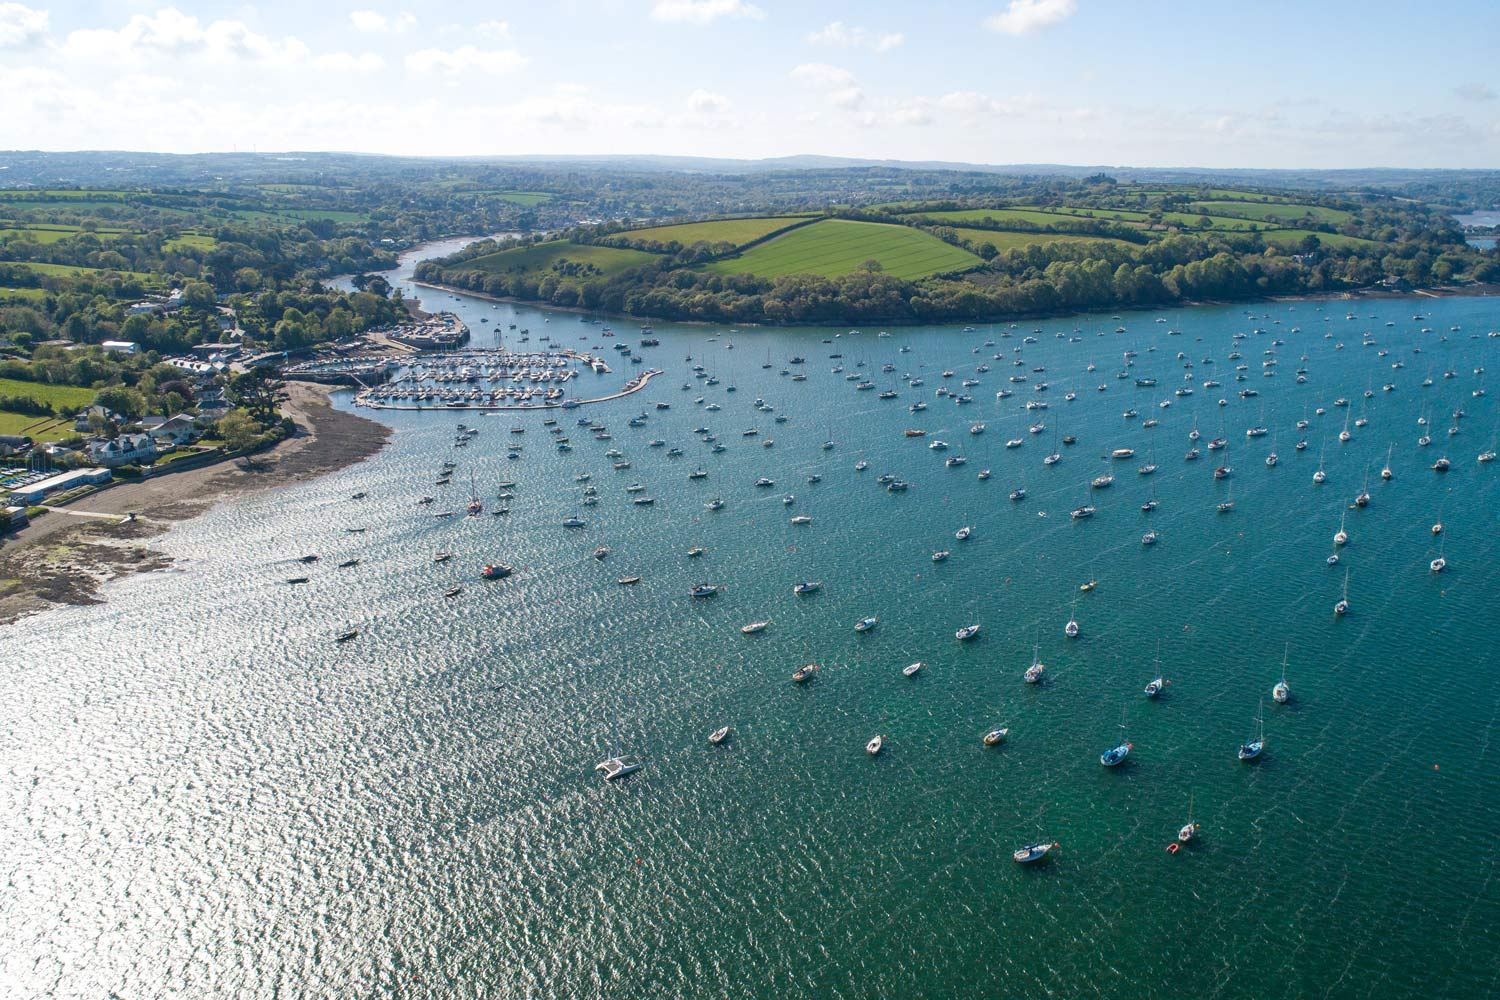 Drone Photograph of Mylor Yacht Harbour and the Falmouth Estuary